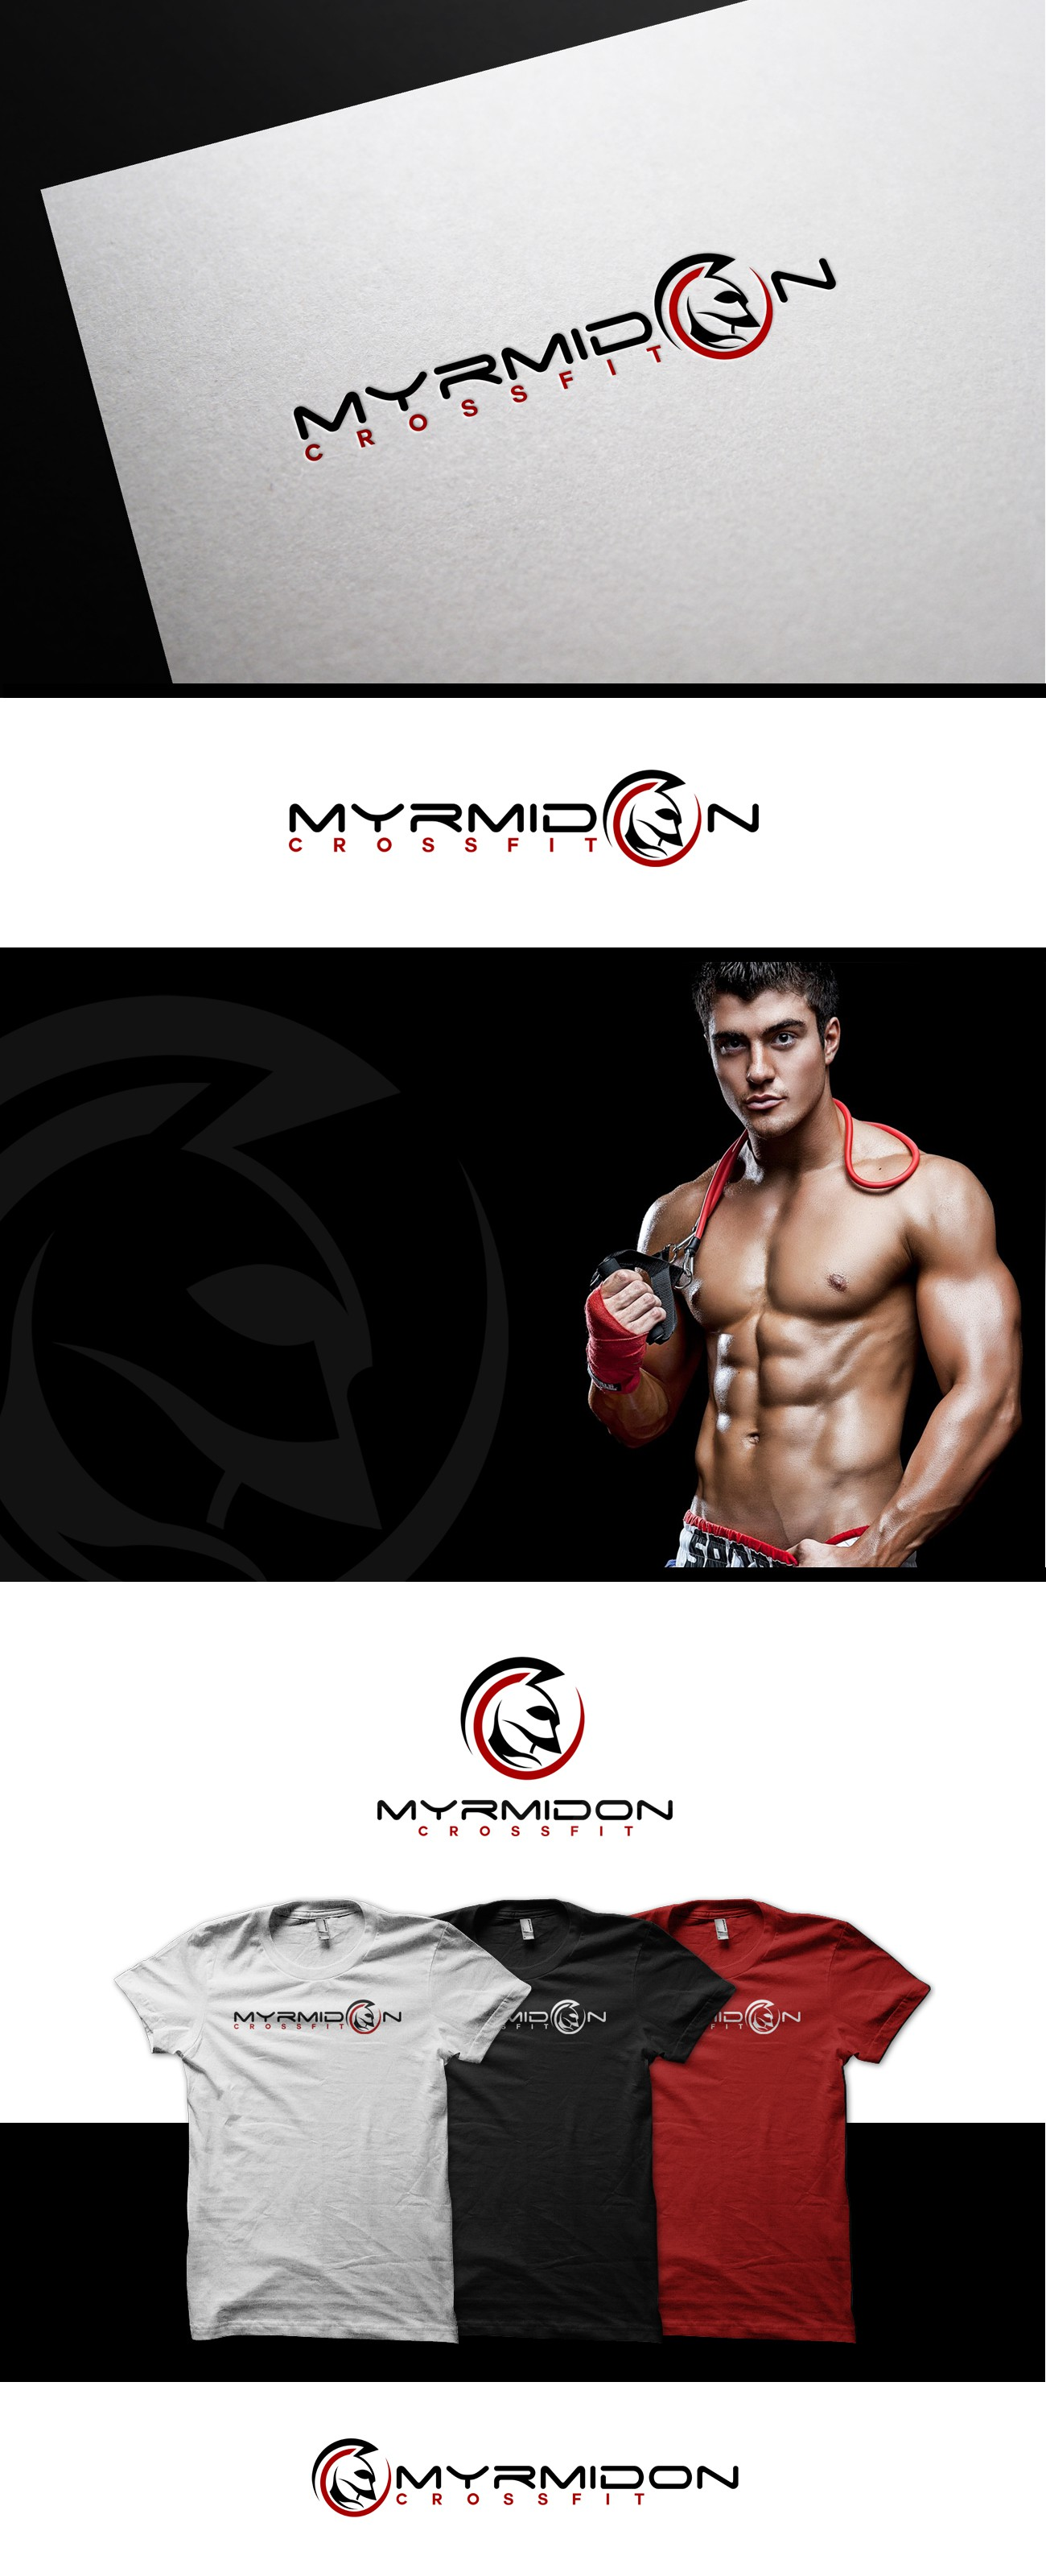 New logo wanted for Myrmidon CrossFit